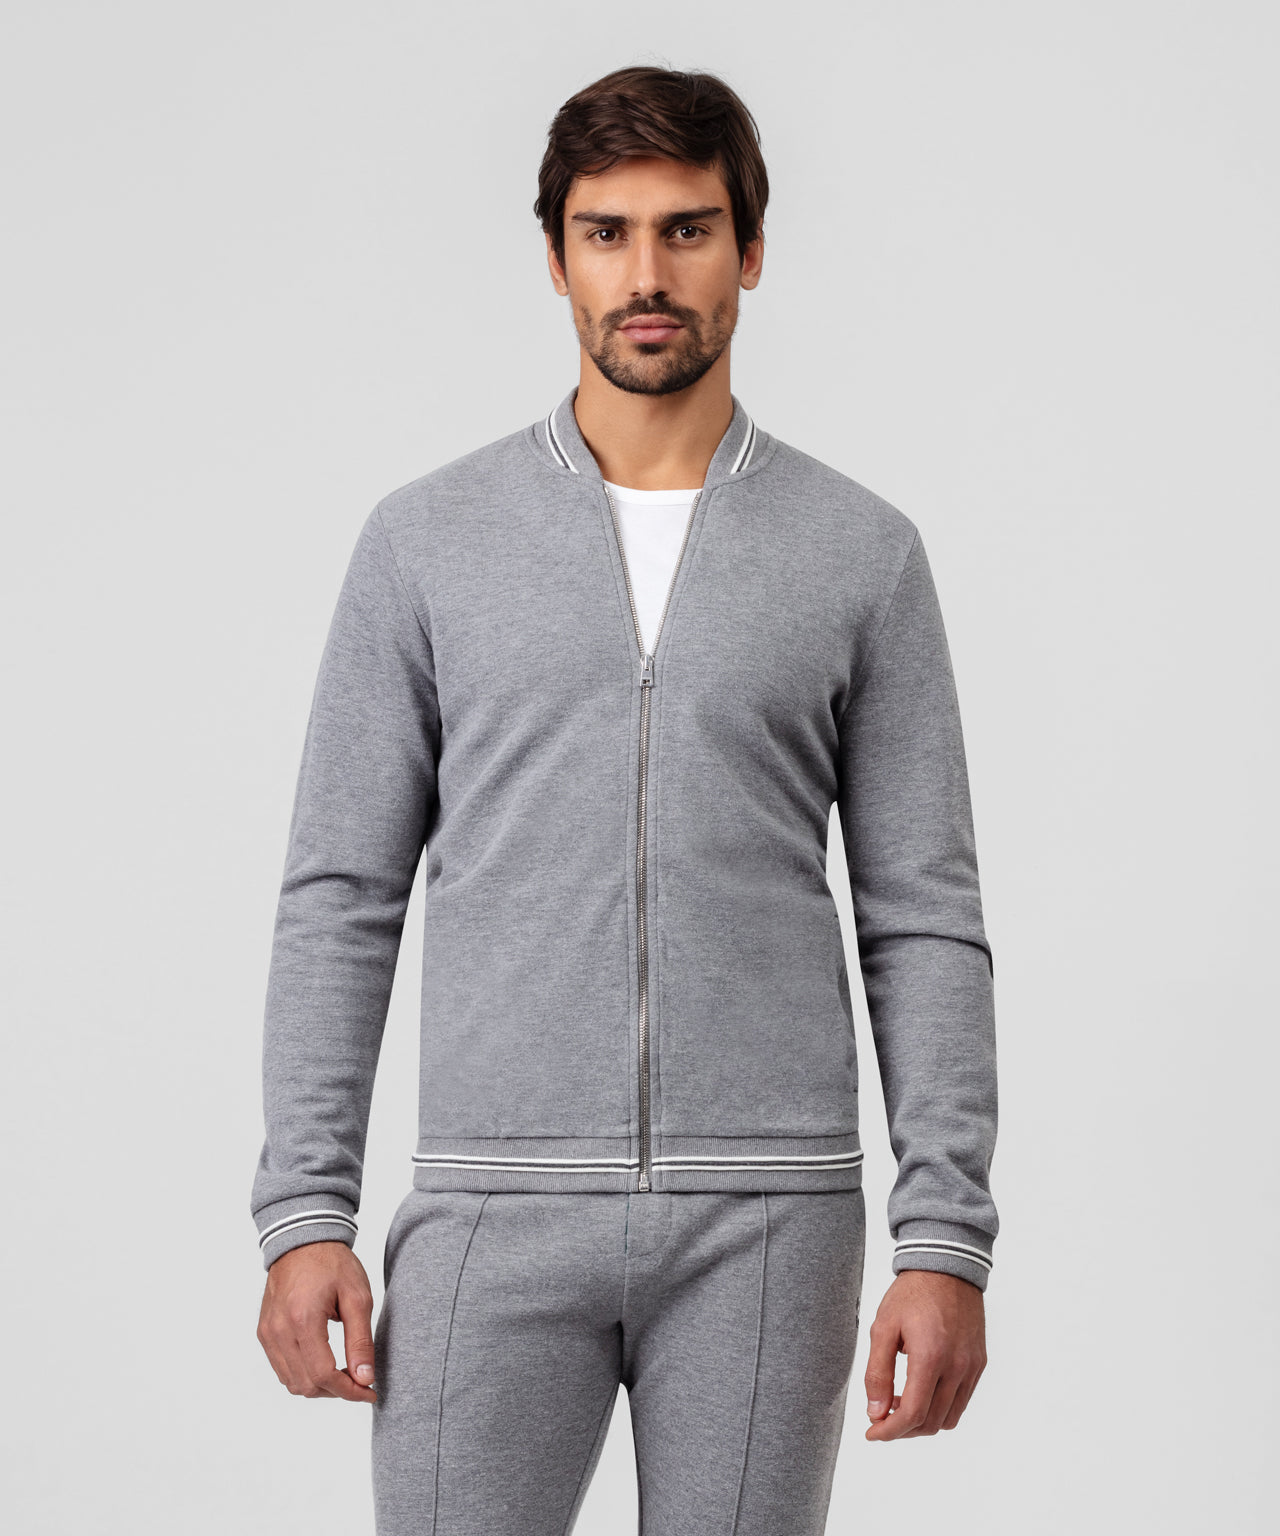 Urban Teddy Jacket - grey melange